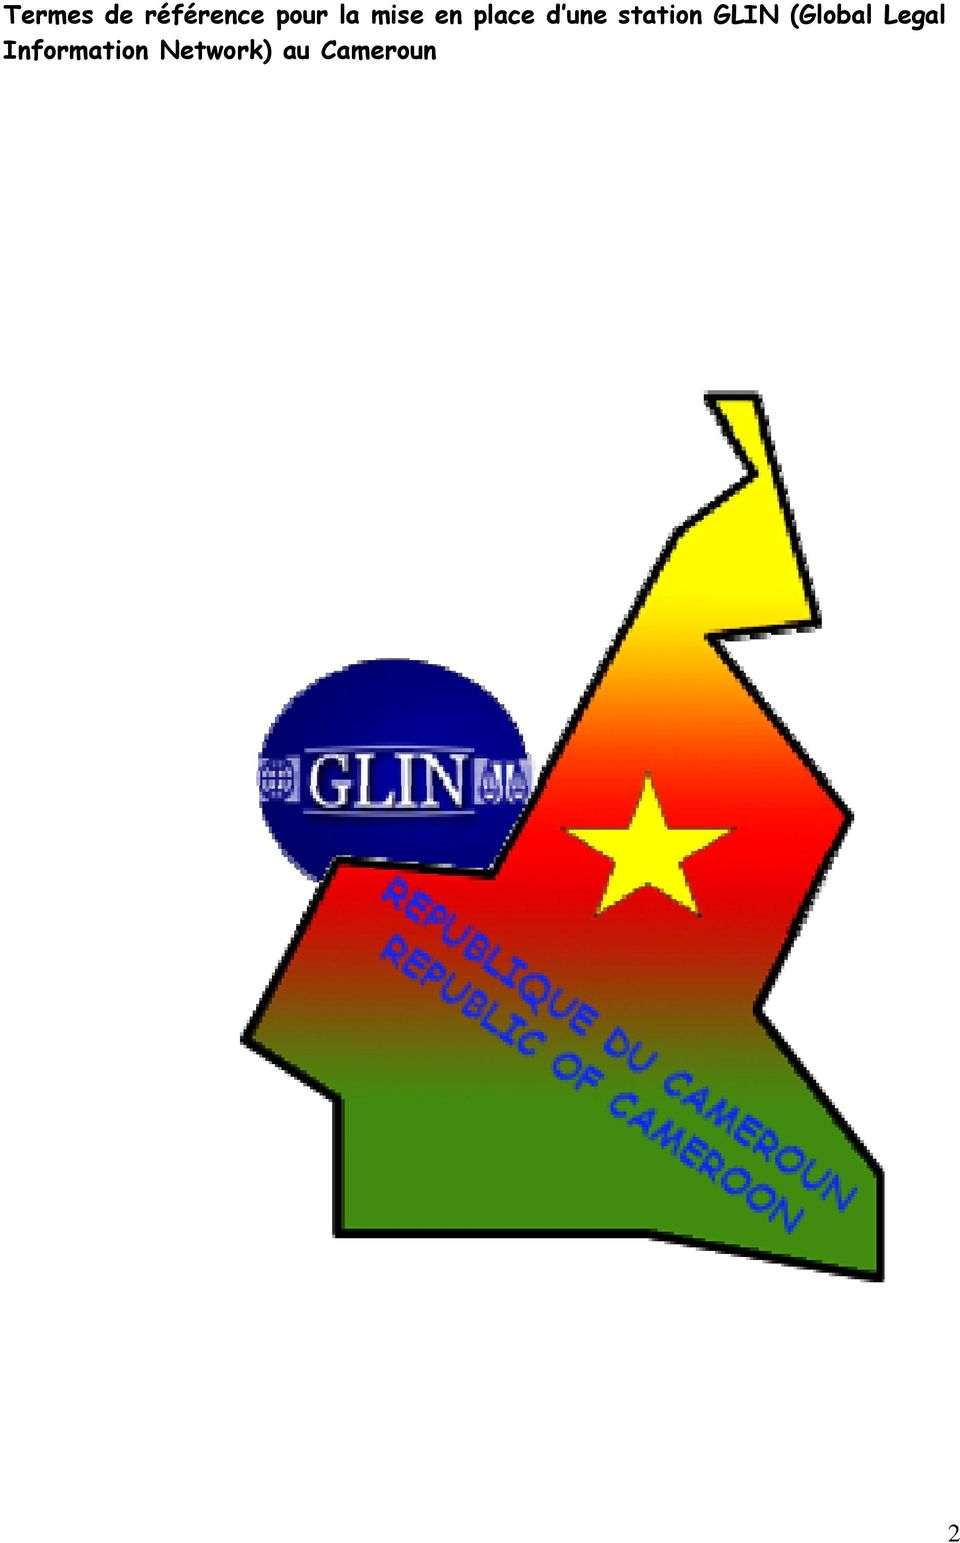 GLIN (Global Legal